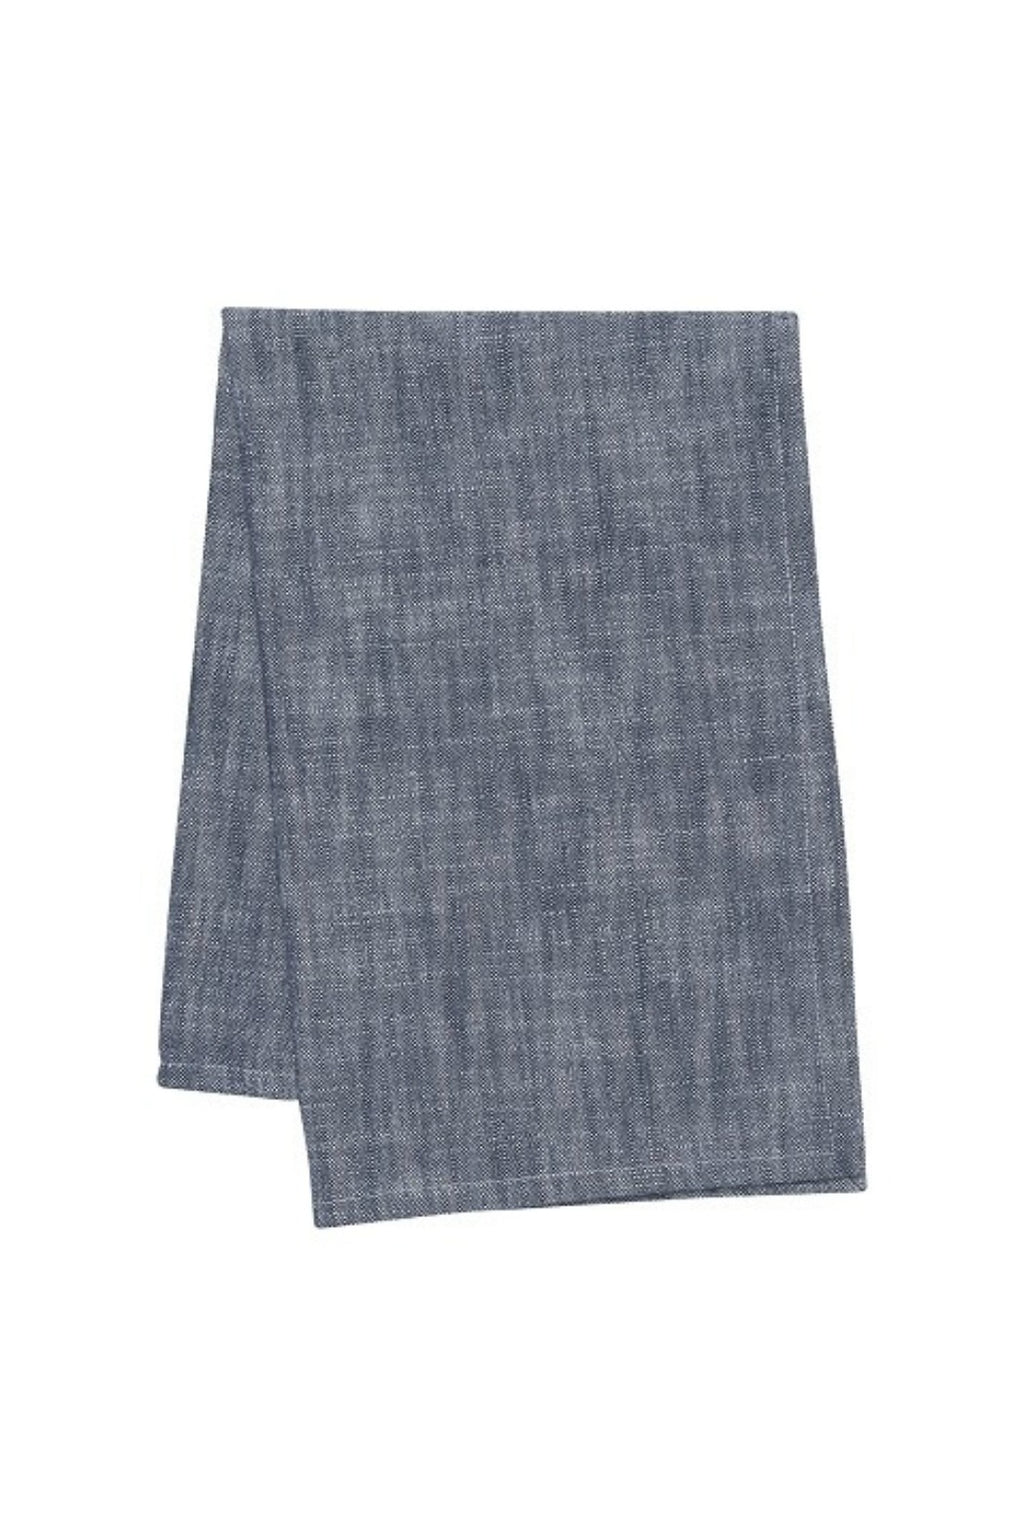 Now Designs Emerson Dishtowel in Blue